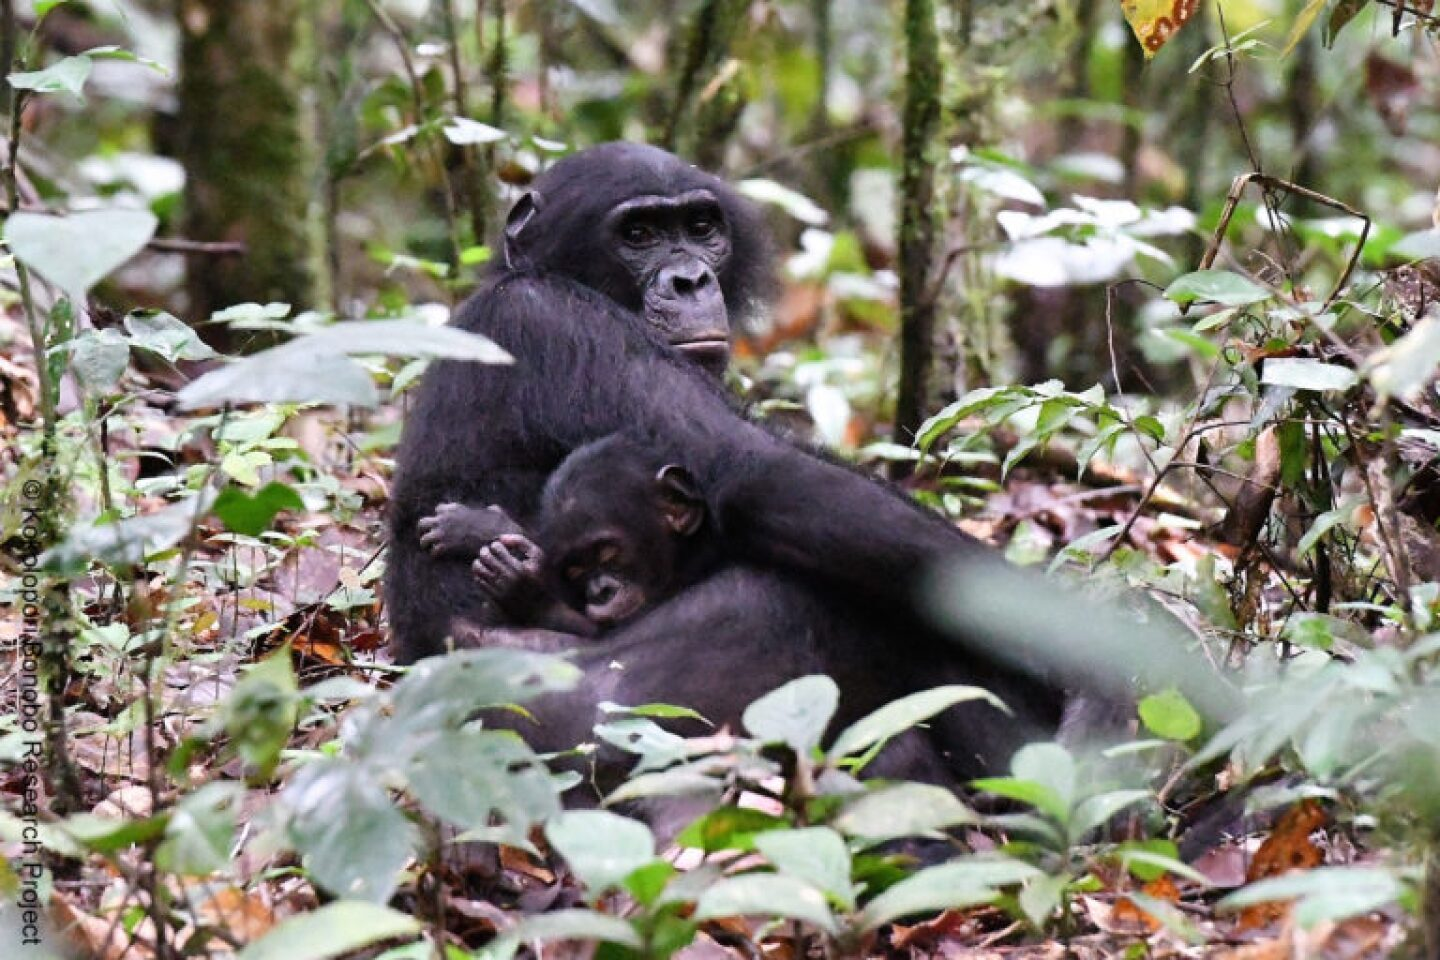 Bonobos only reproduce once every four or five years because baby bonobos